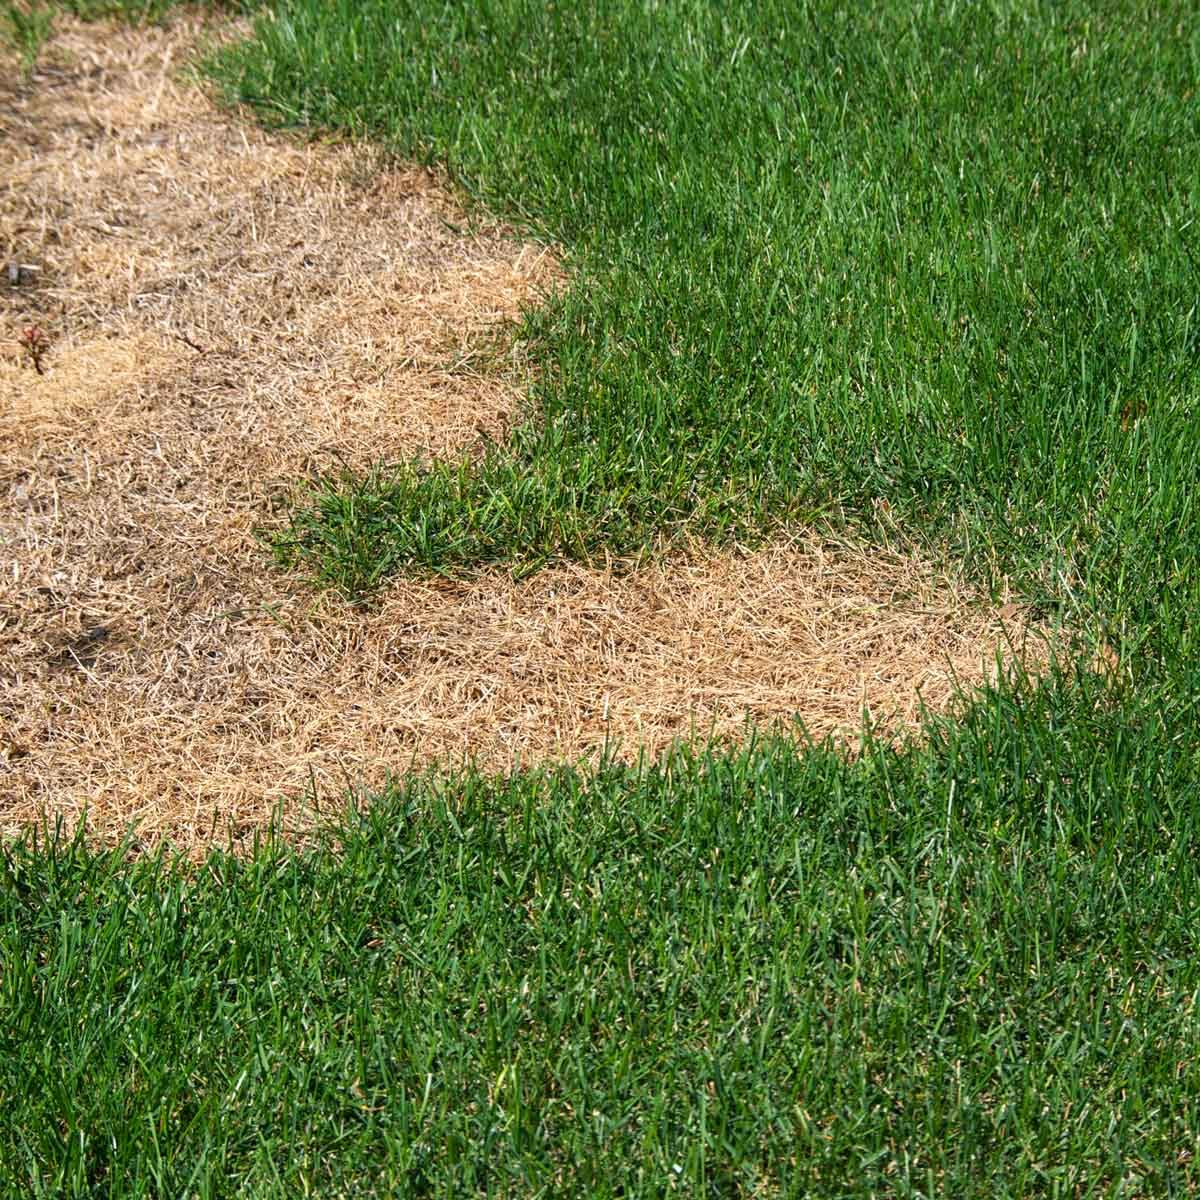 Dry grass patch